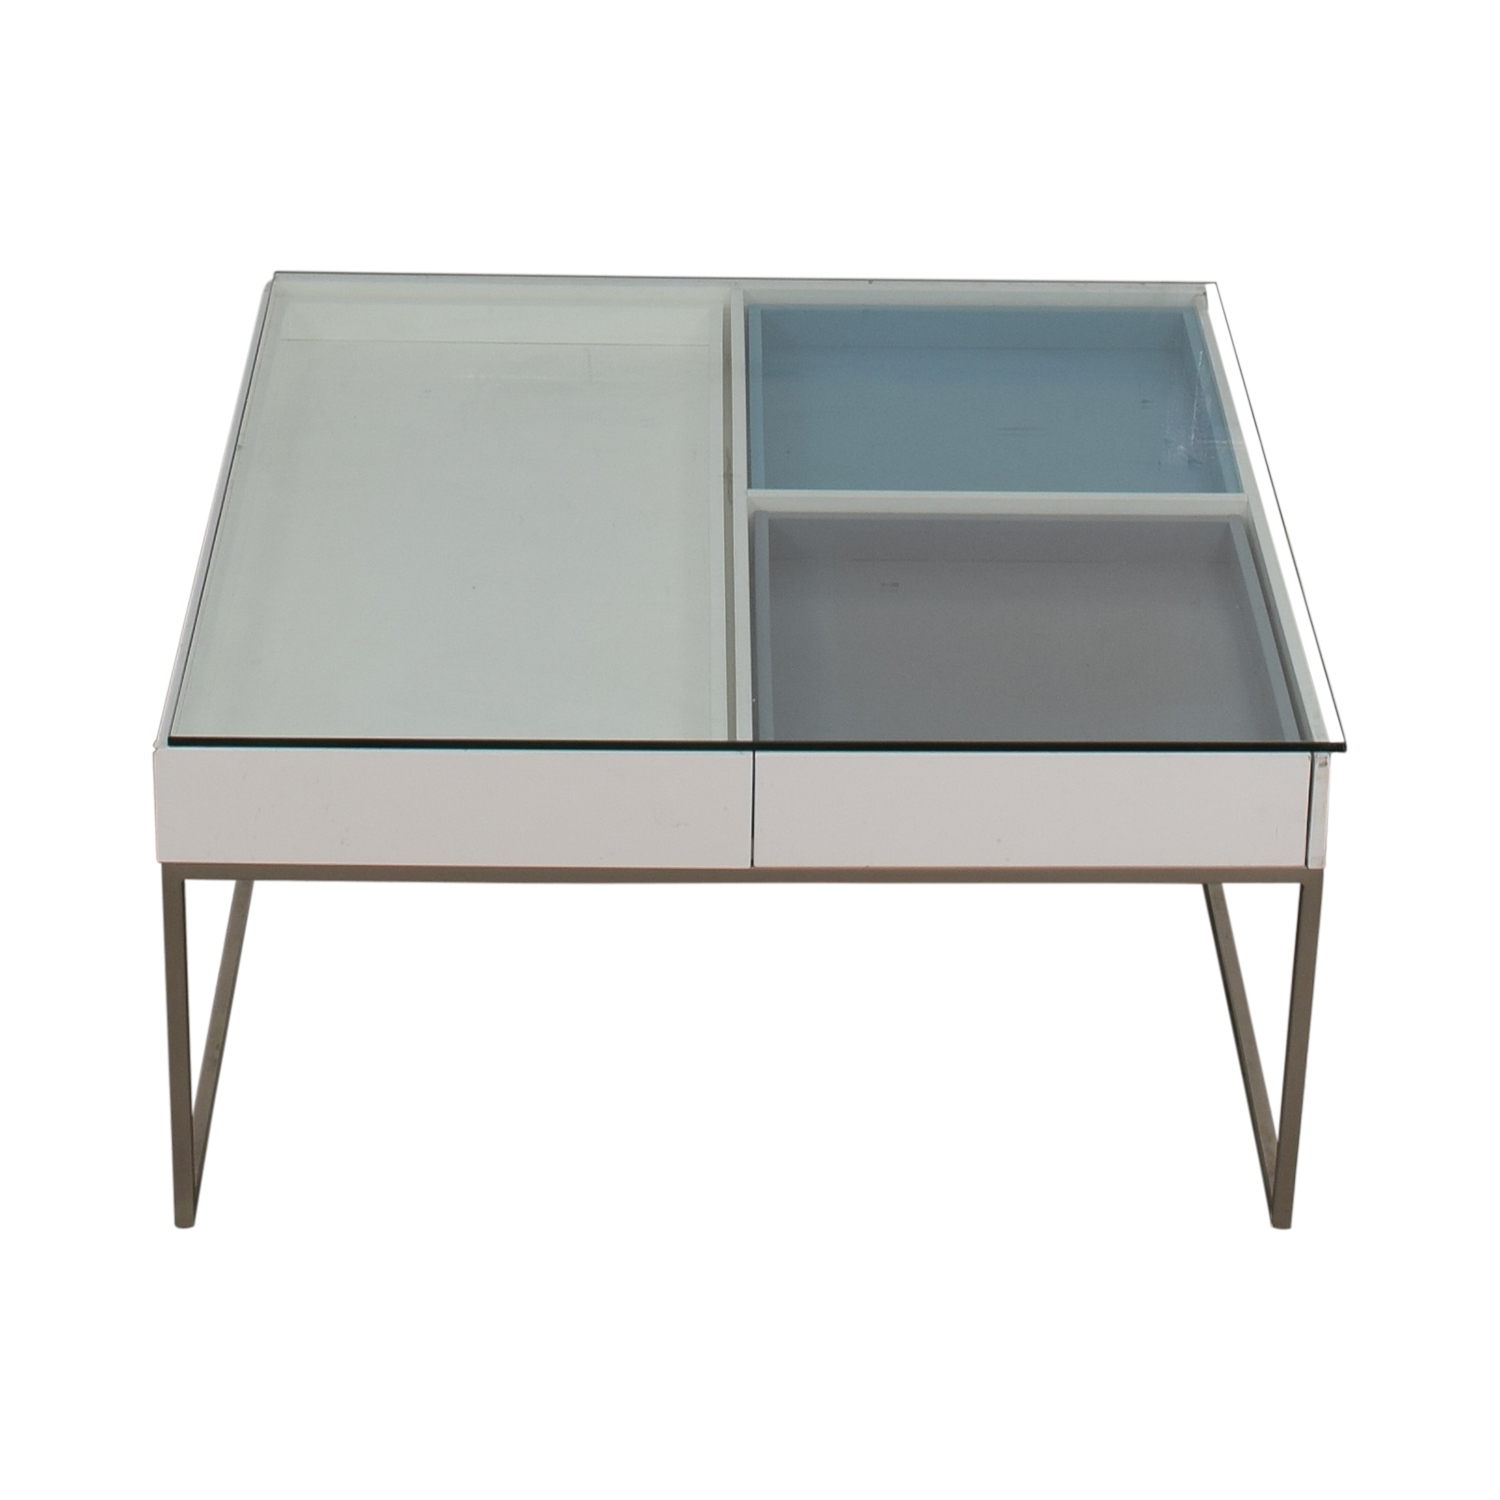 BoConcept BoConcept Chiva Glass and White Lacquered Coffee Table nyc